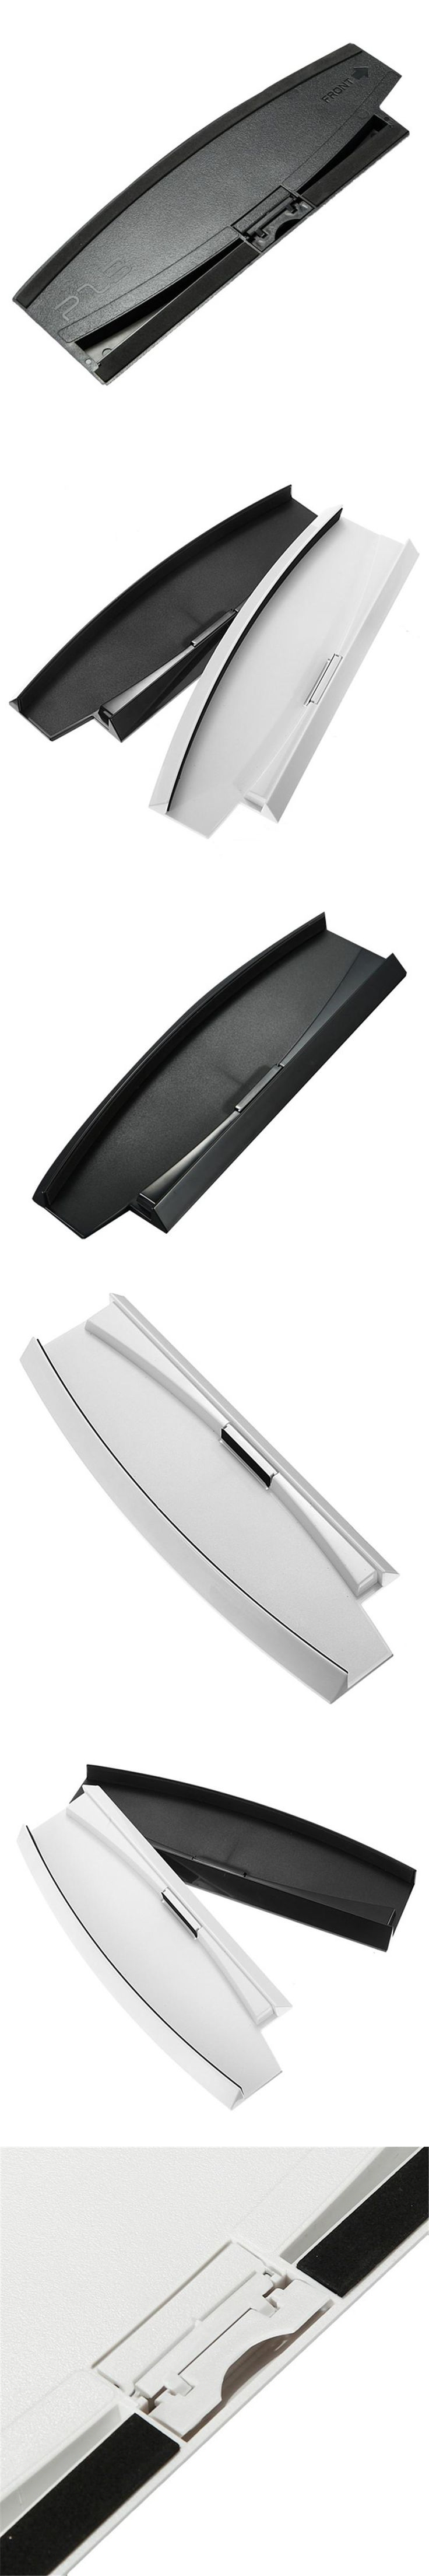 Newest !! Special Offer Black/White Color Vertical Stand Dock Base For Sony For Playstation 3 Slim Console For PS3 2000 Series